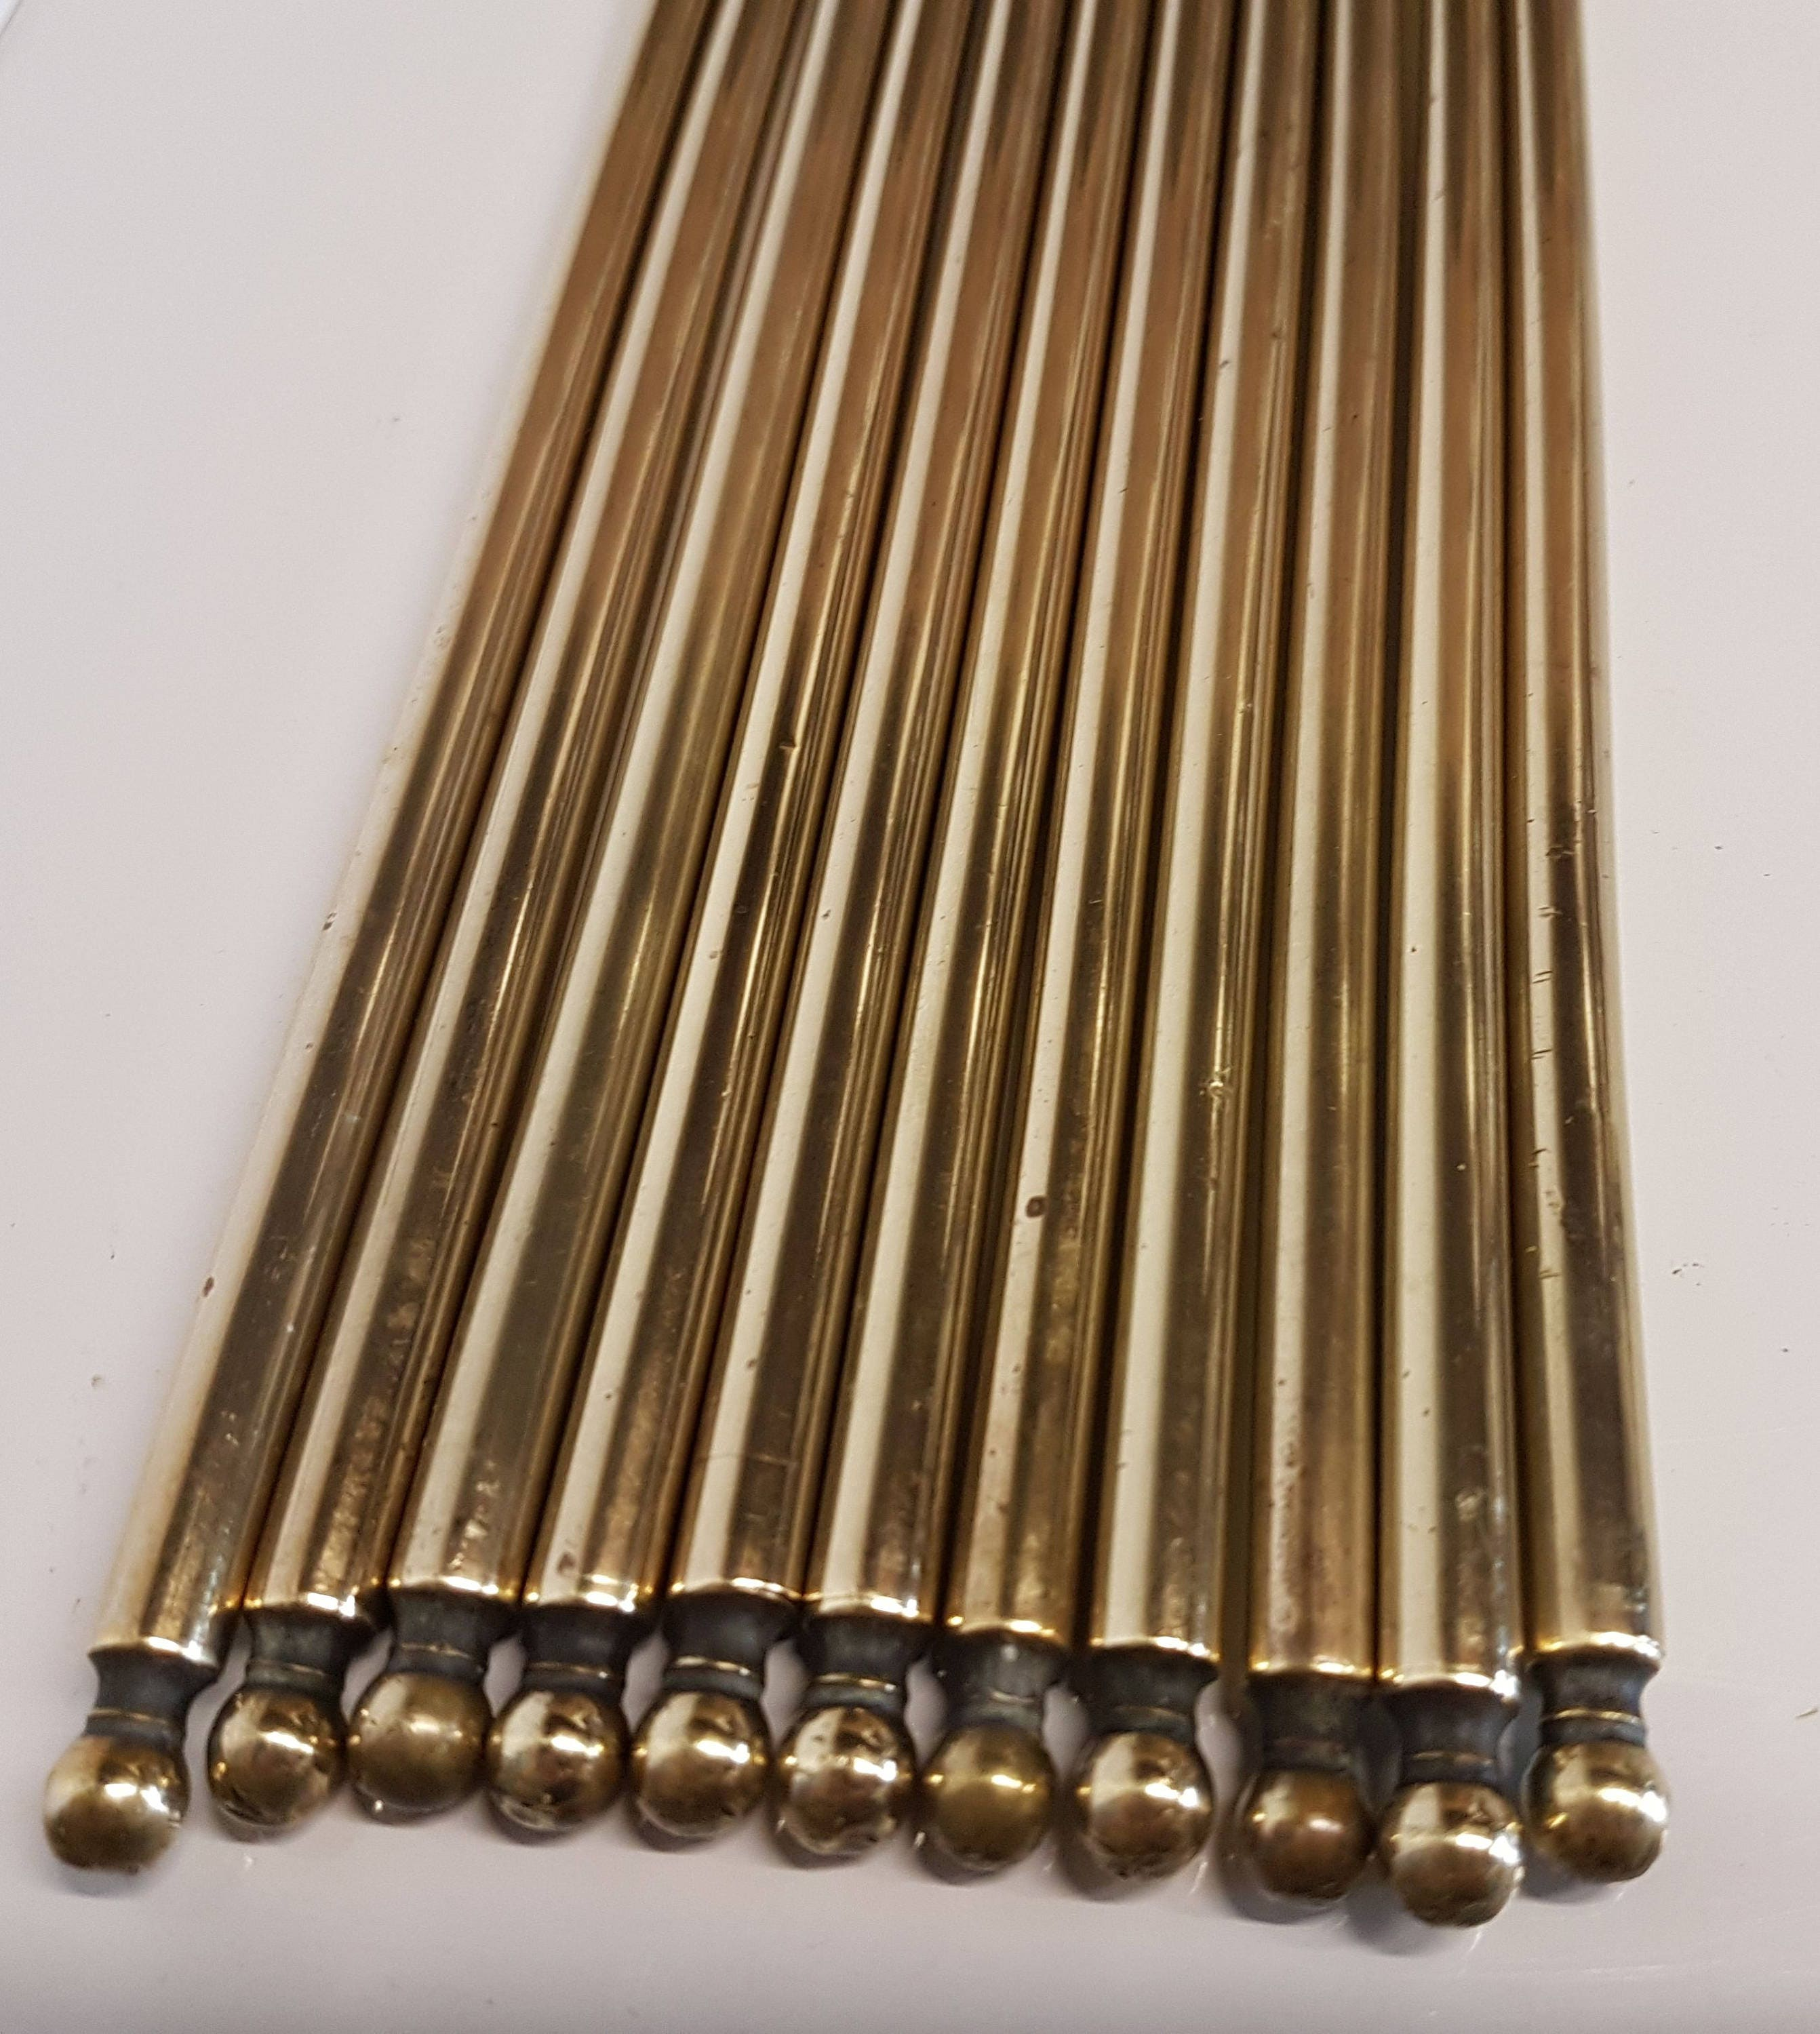 Eleven Brass Stair Rods Reclaimed From A Staircase In A Victorian House ~  Antique Carpet Rods 27 Inches Or 69 Cm